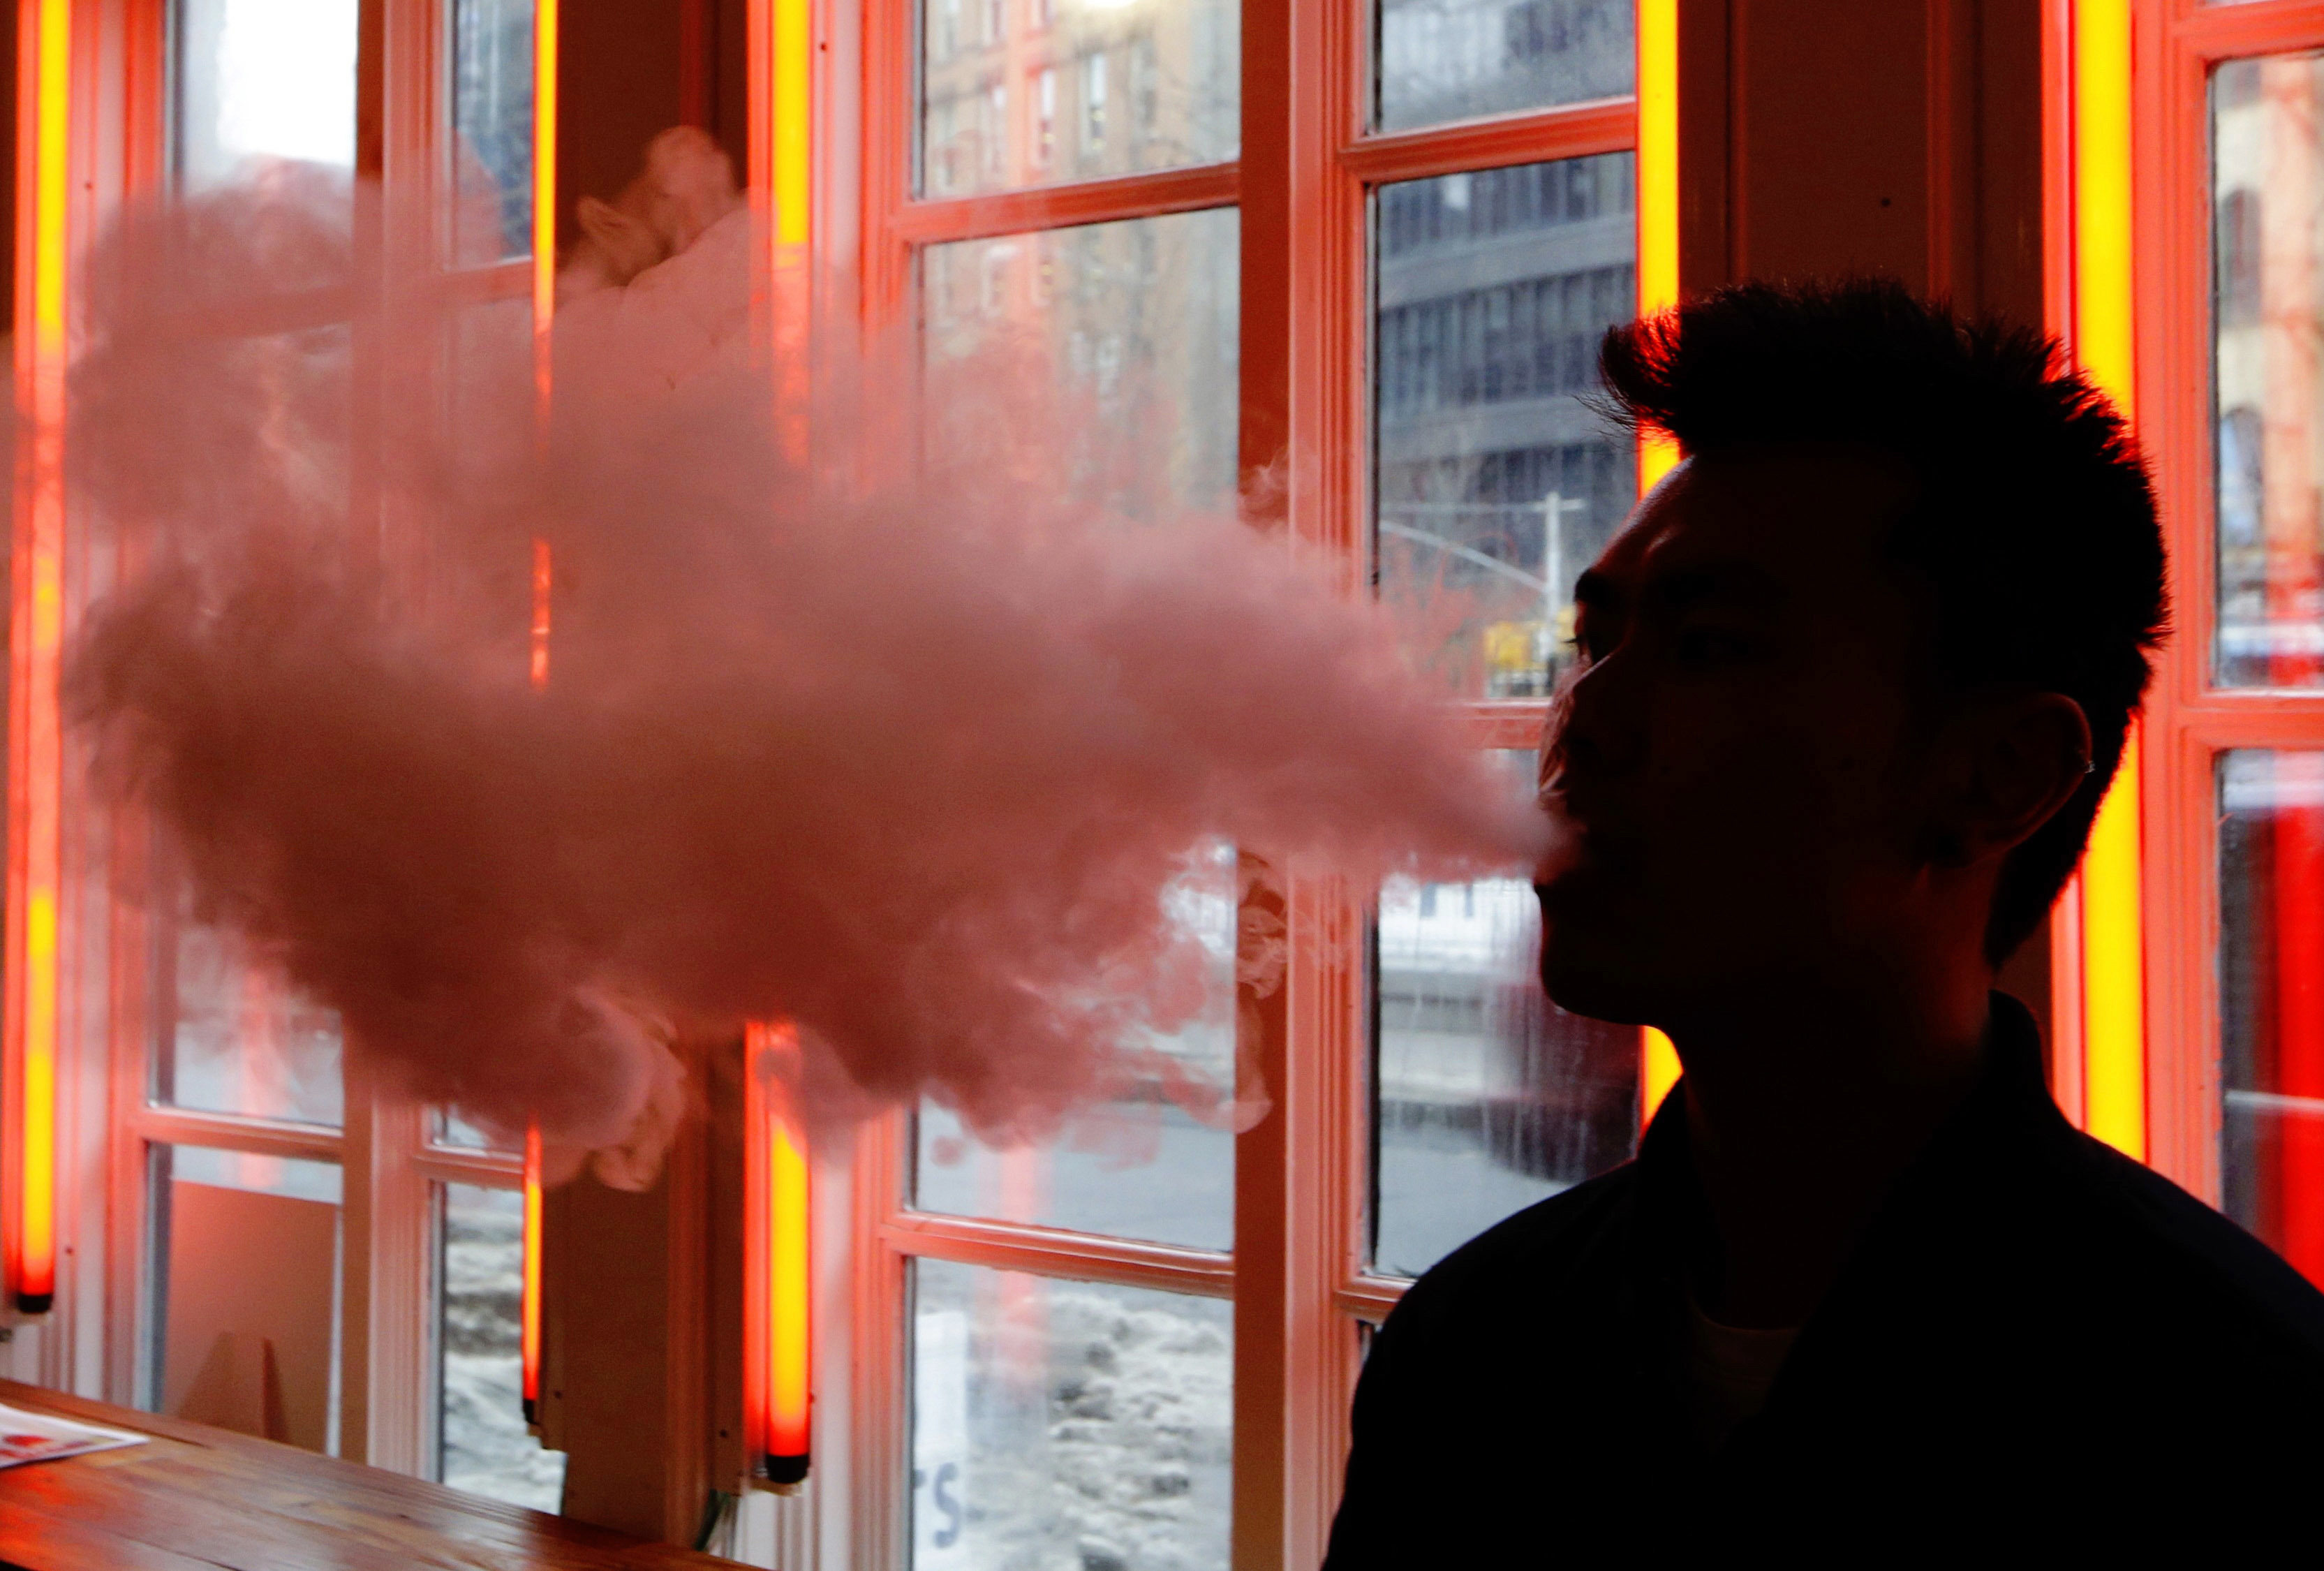 A customer exhales vapor from an e-cigarette at a store in New York onFeb. 20, 2014.